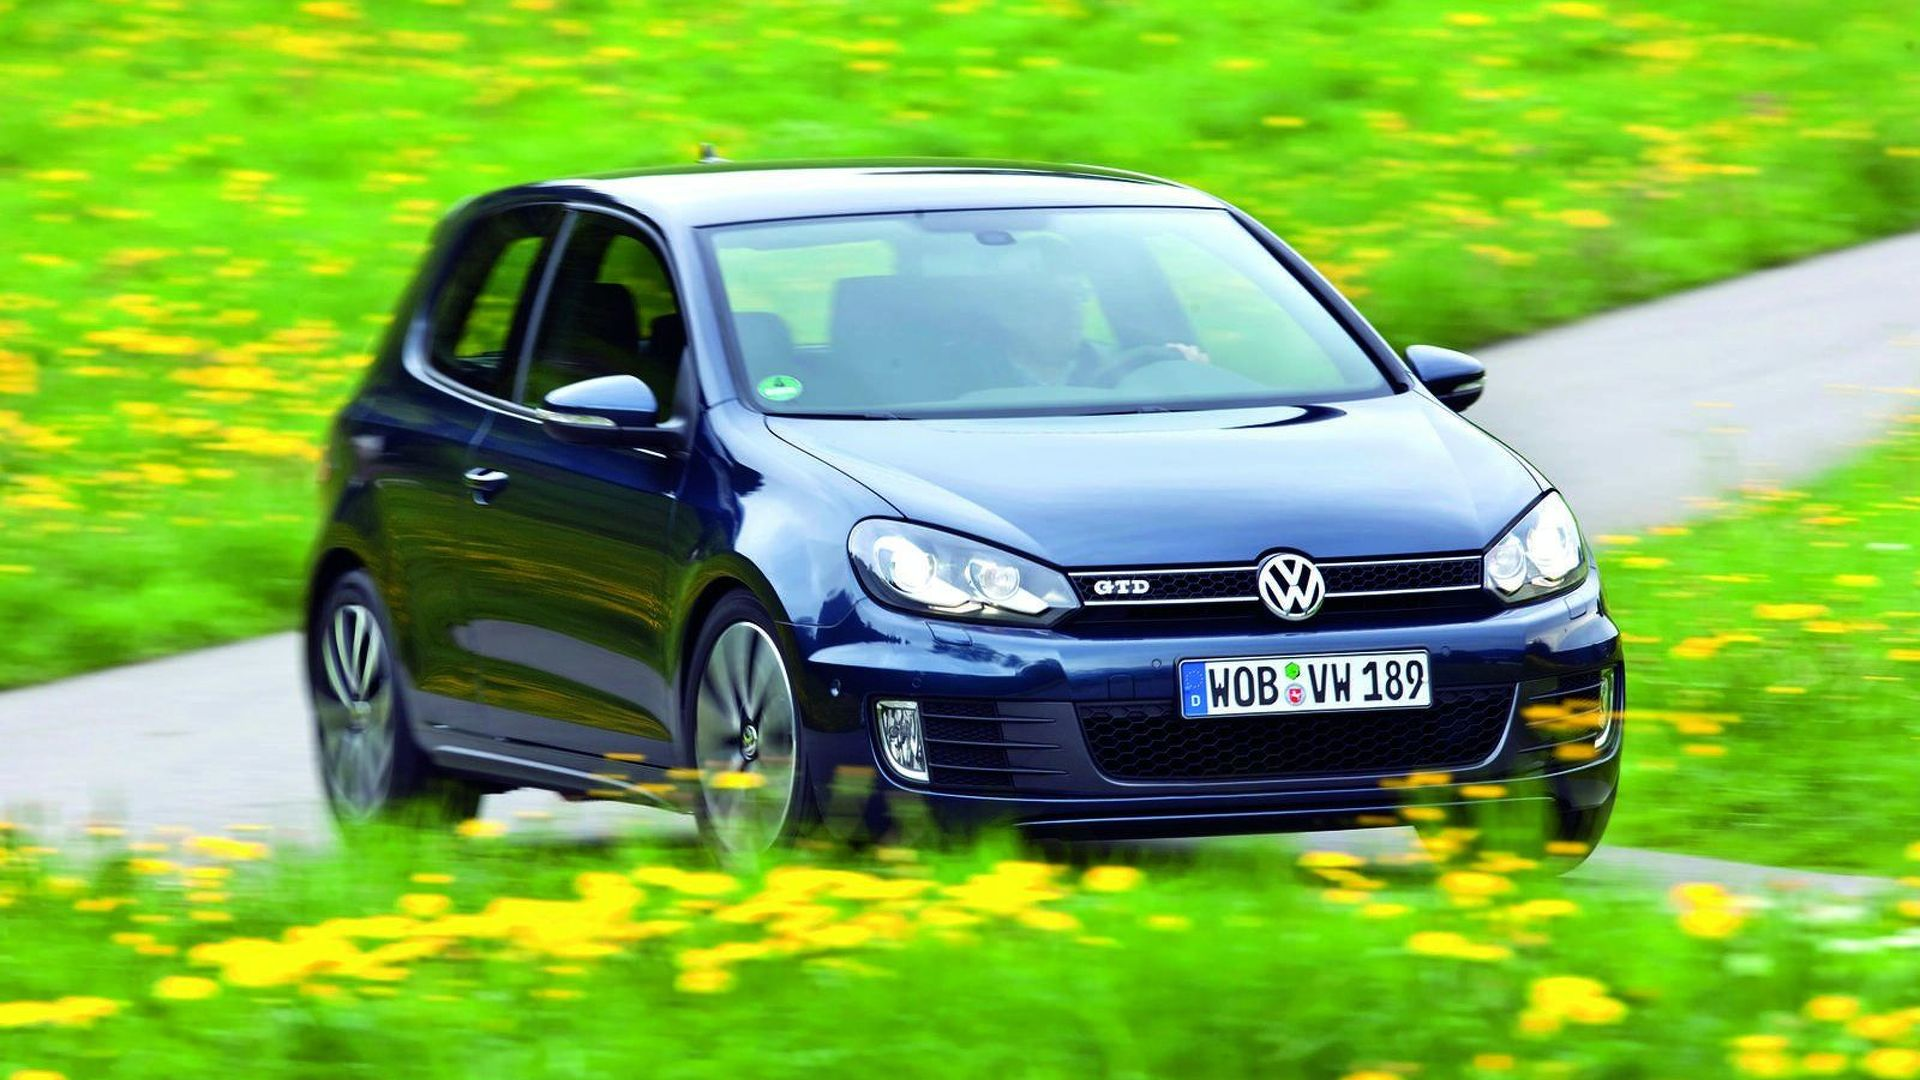 VW Golf GTD launches in Germany starting at 27,475 euros